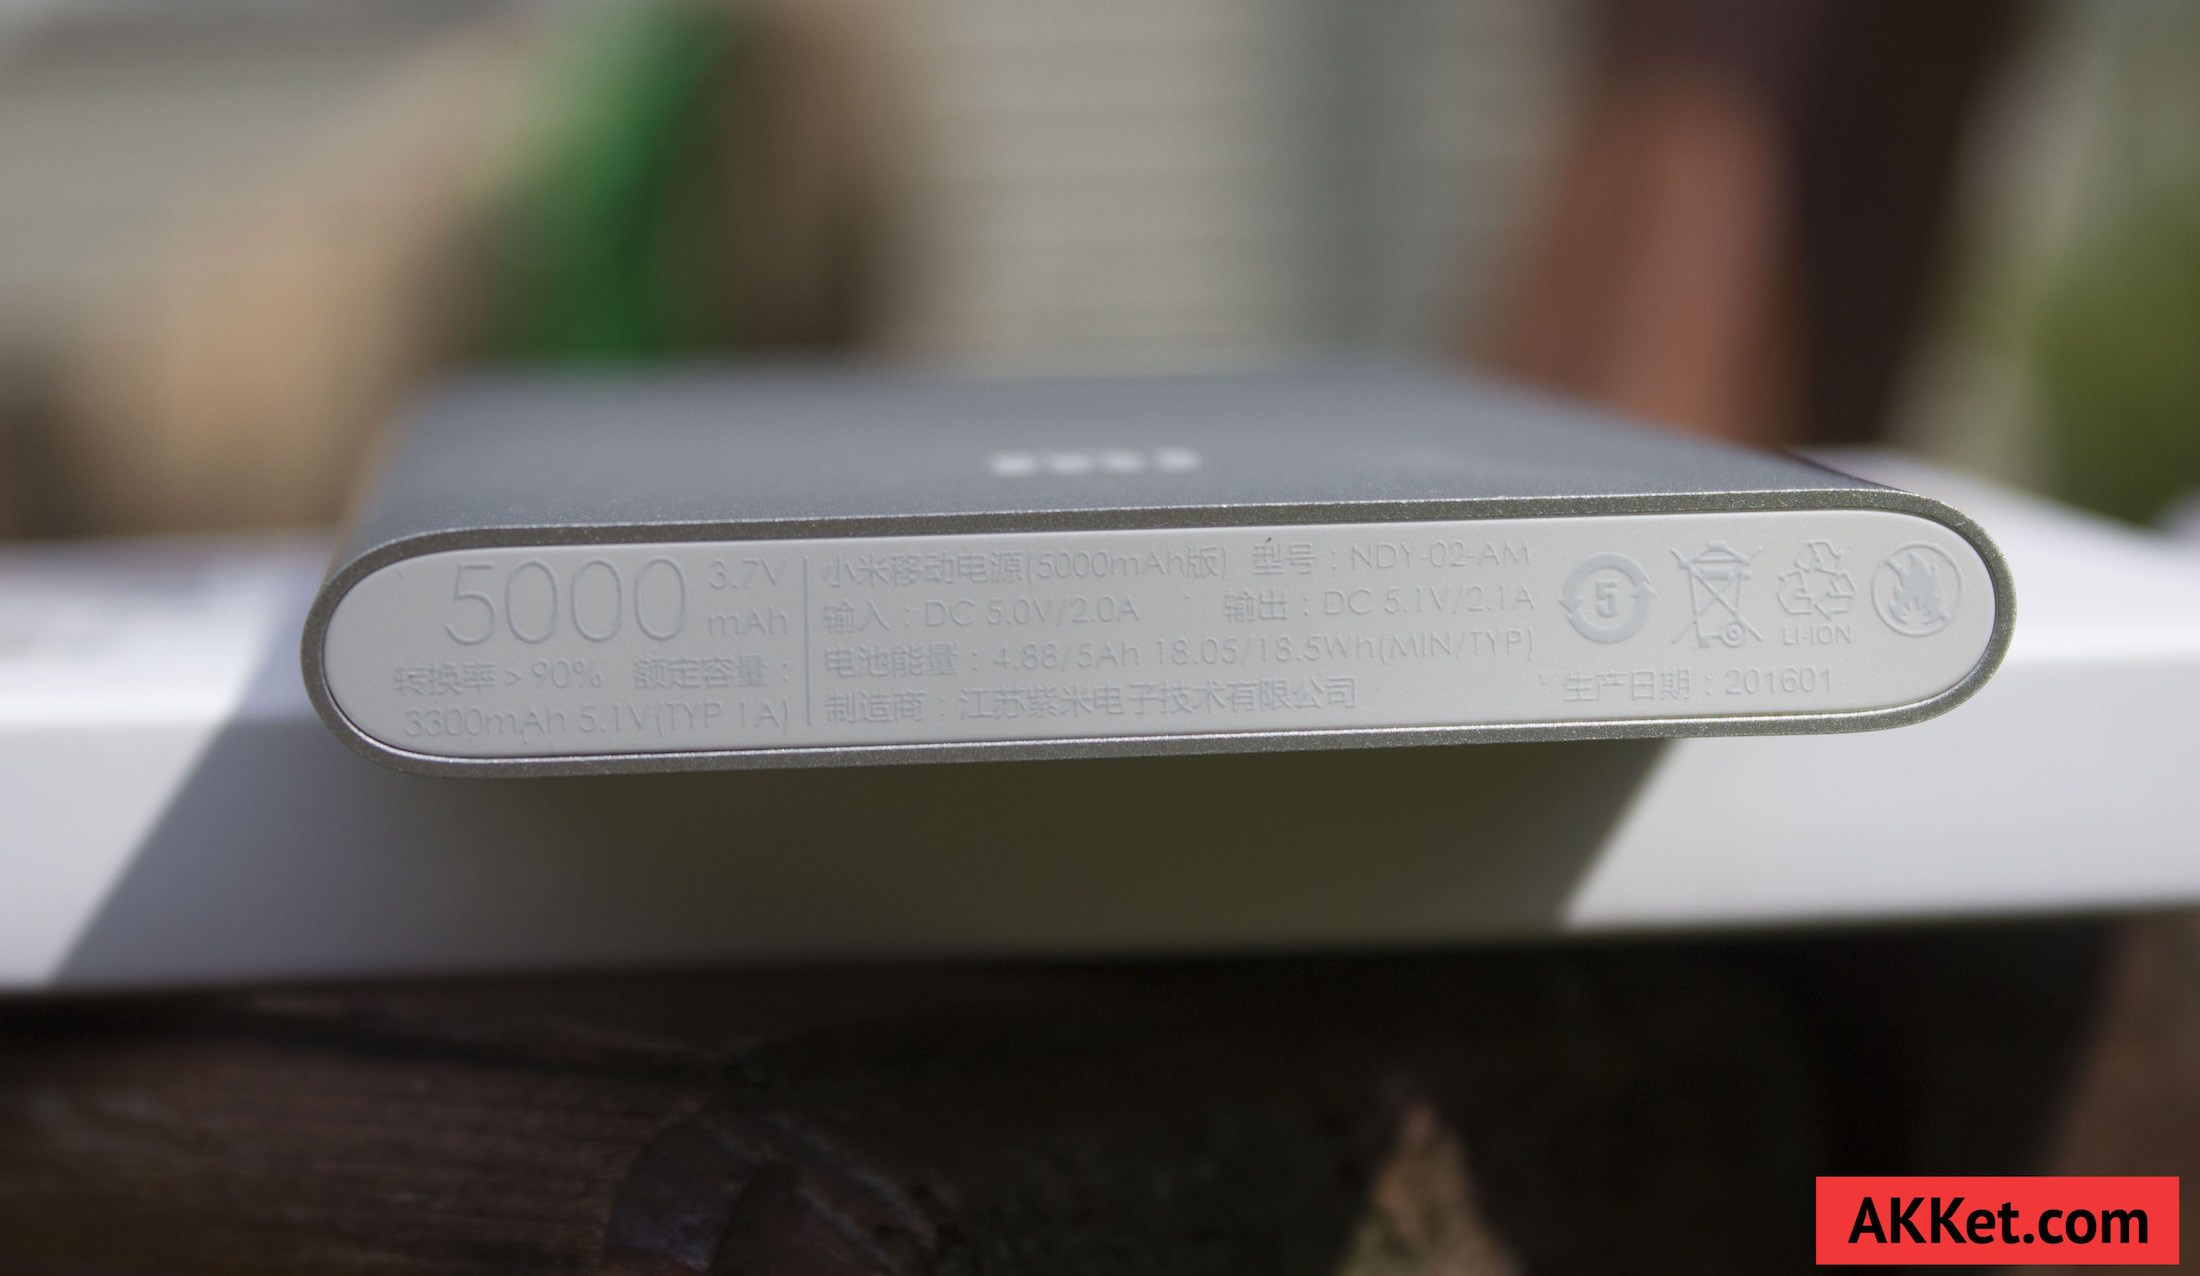 Xiaomi Mi Power Bank 5000 mAh Review iPhone 4